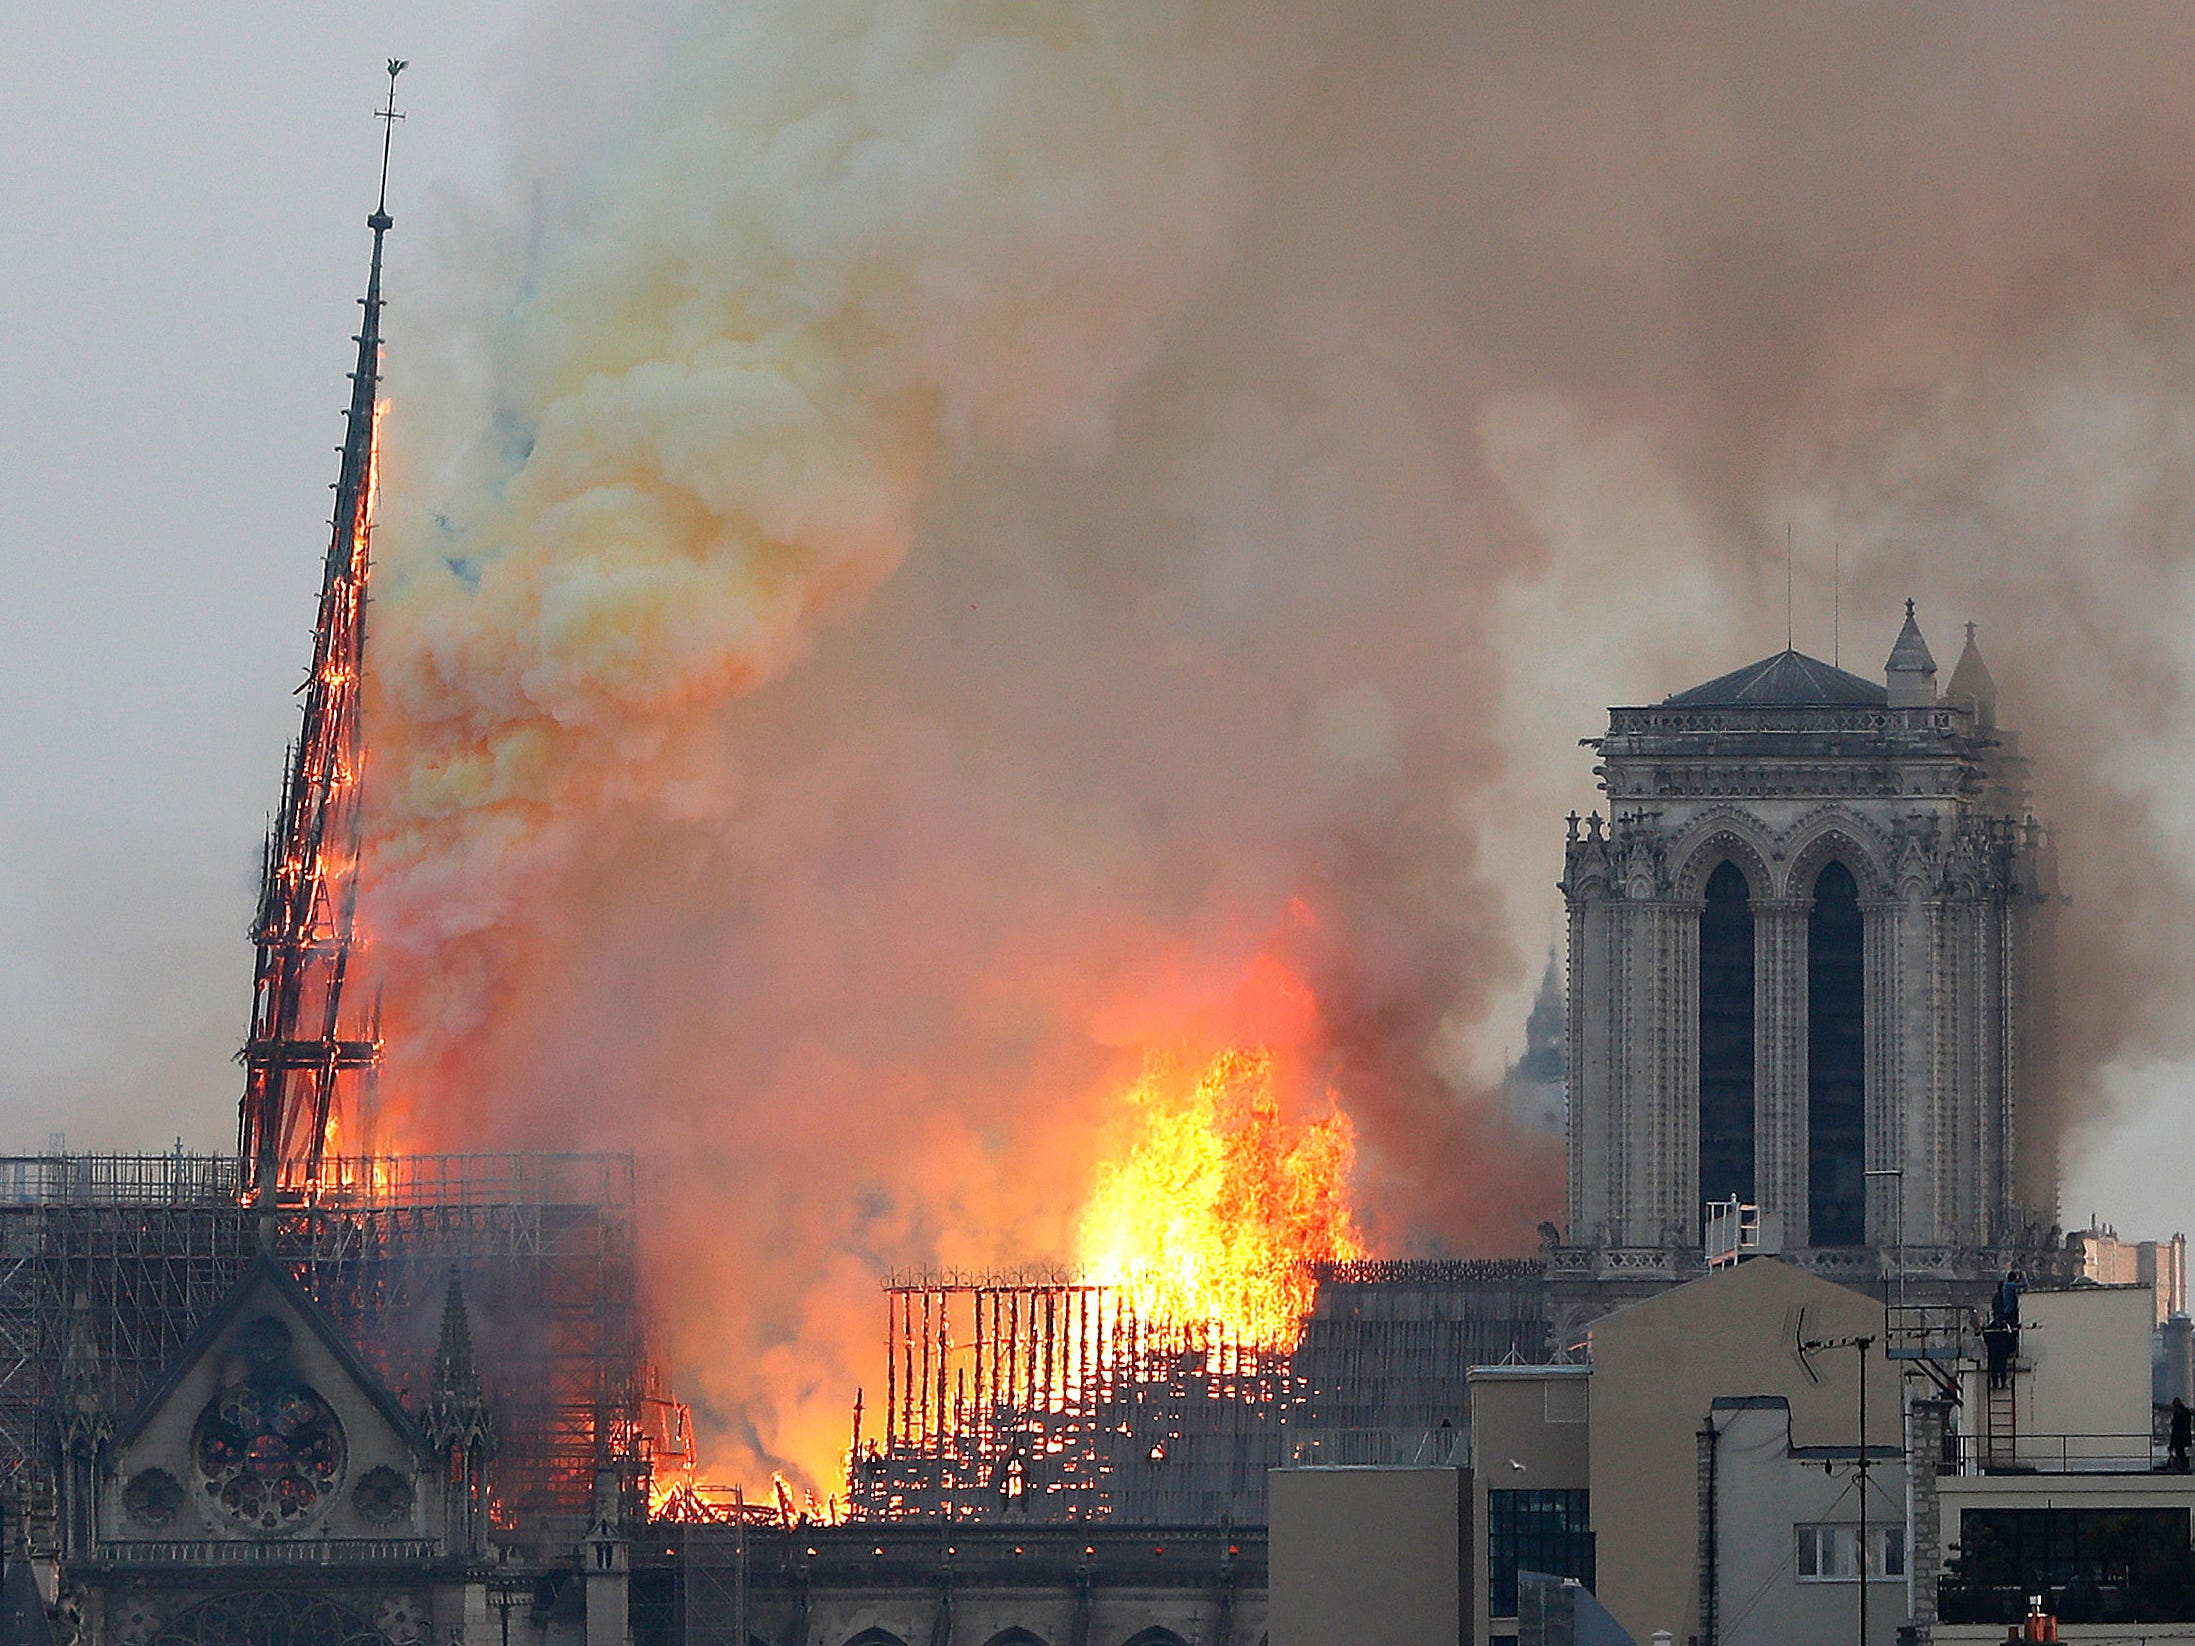 The spire of the cathedral is engulfed in flames before collapsing.